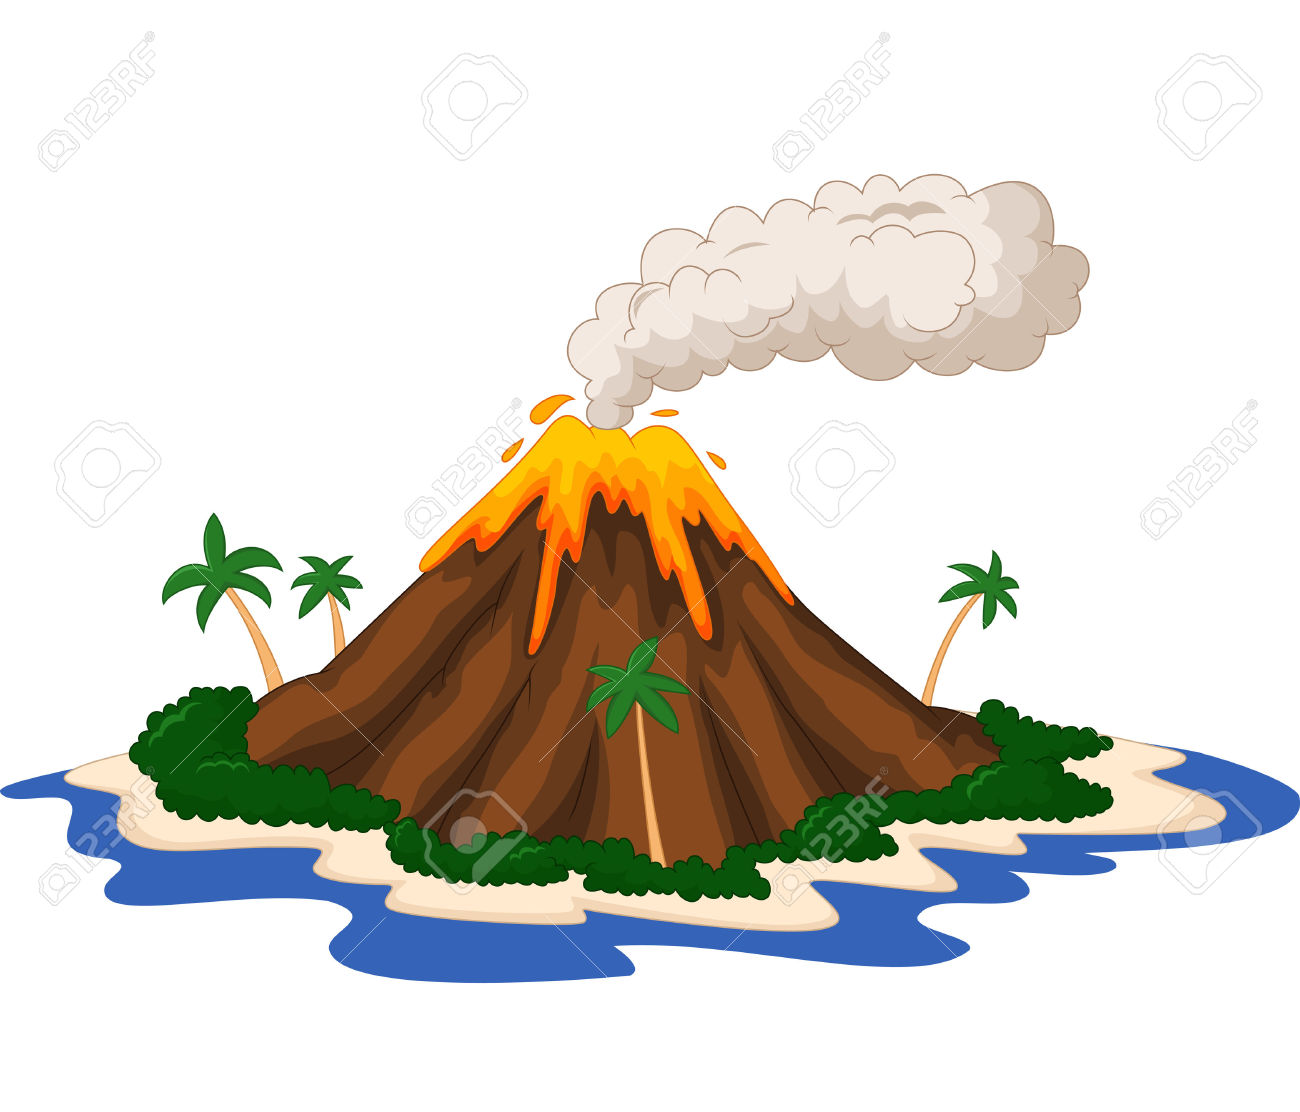 Cvocano clipart clipart images gallery for free download.